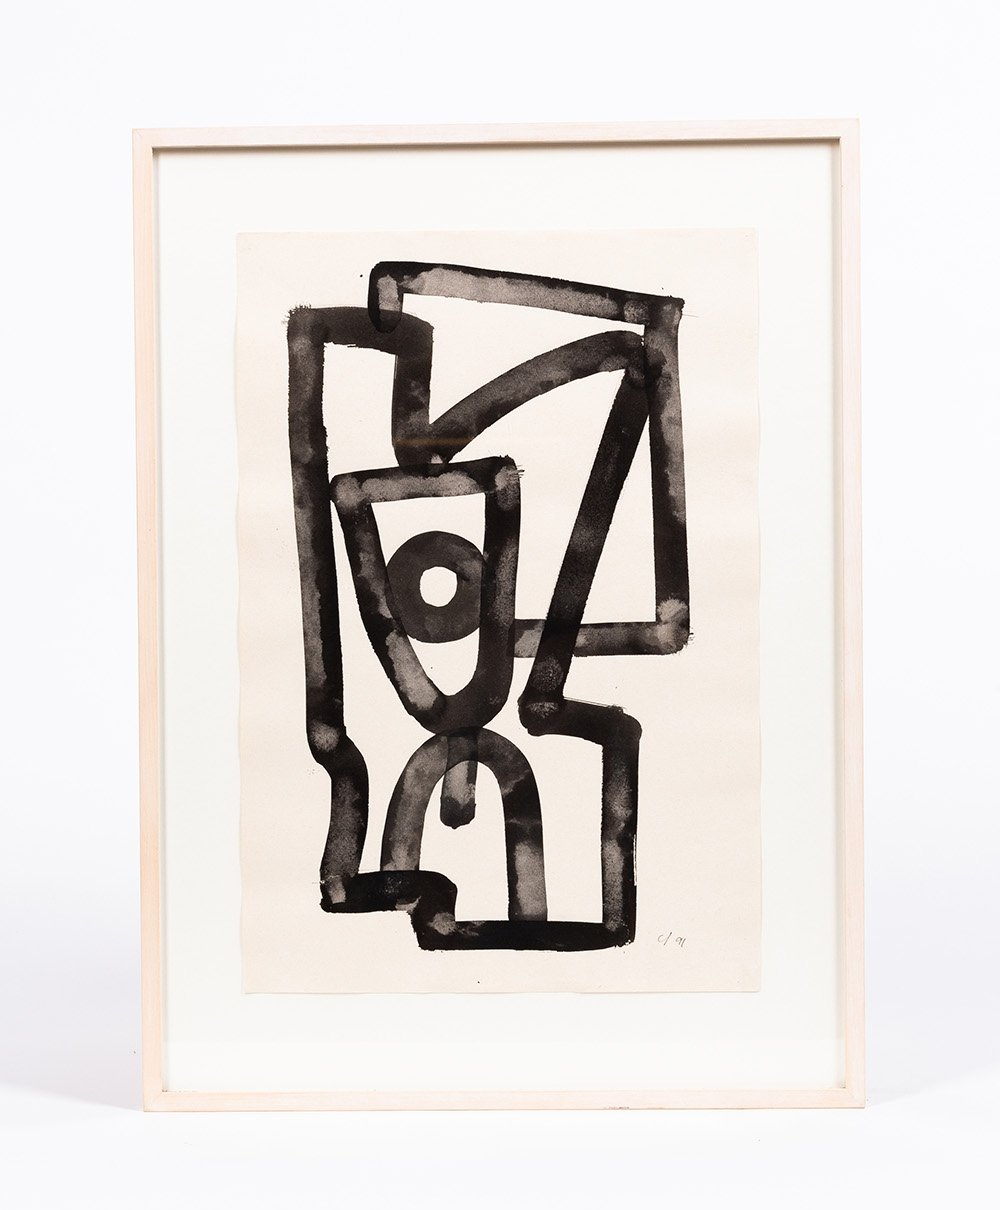 Abstract painting of the Swiss artist Claude Evrard